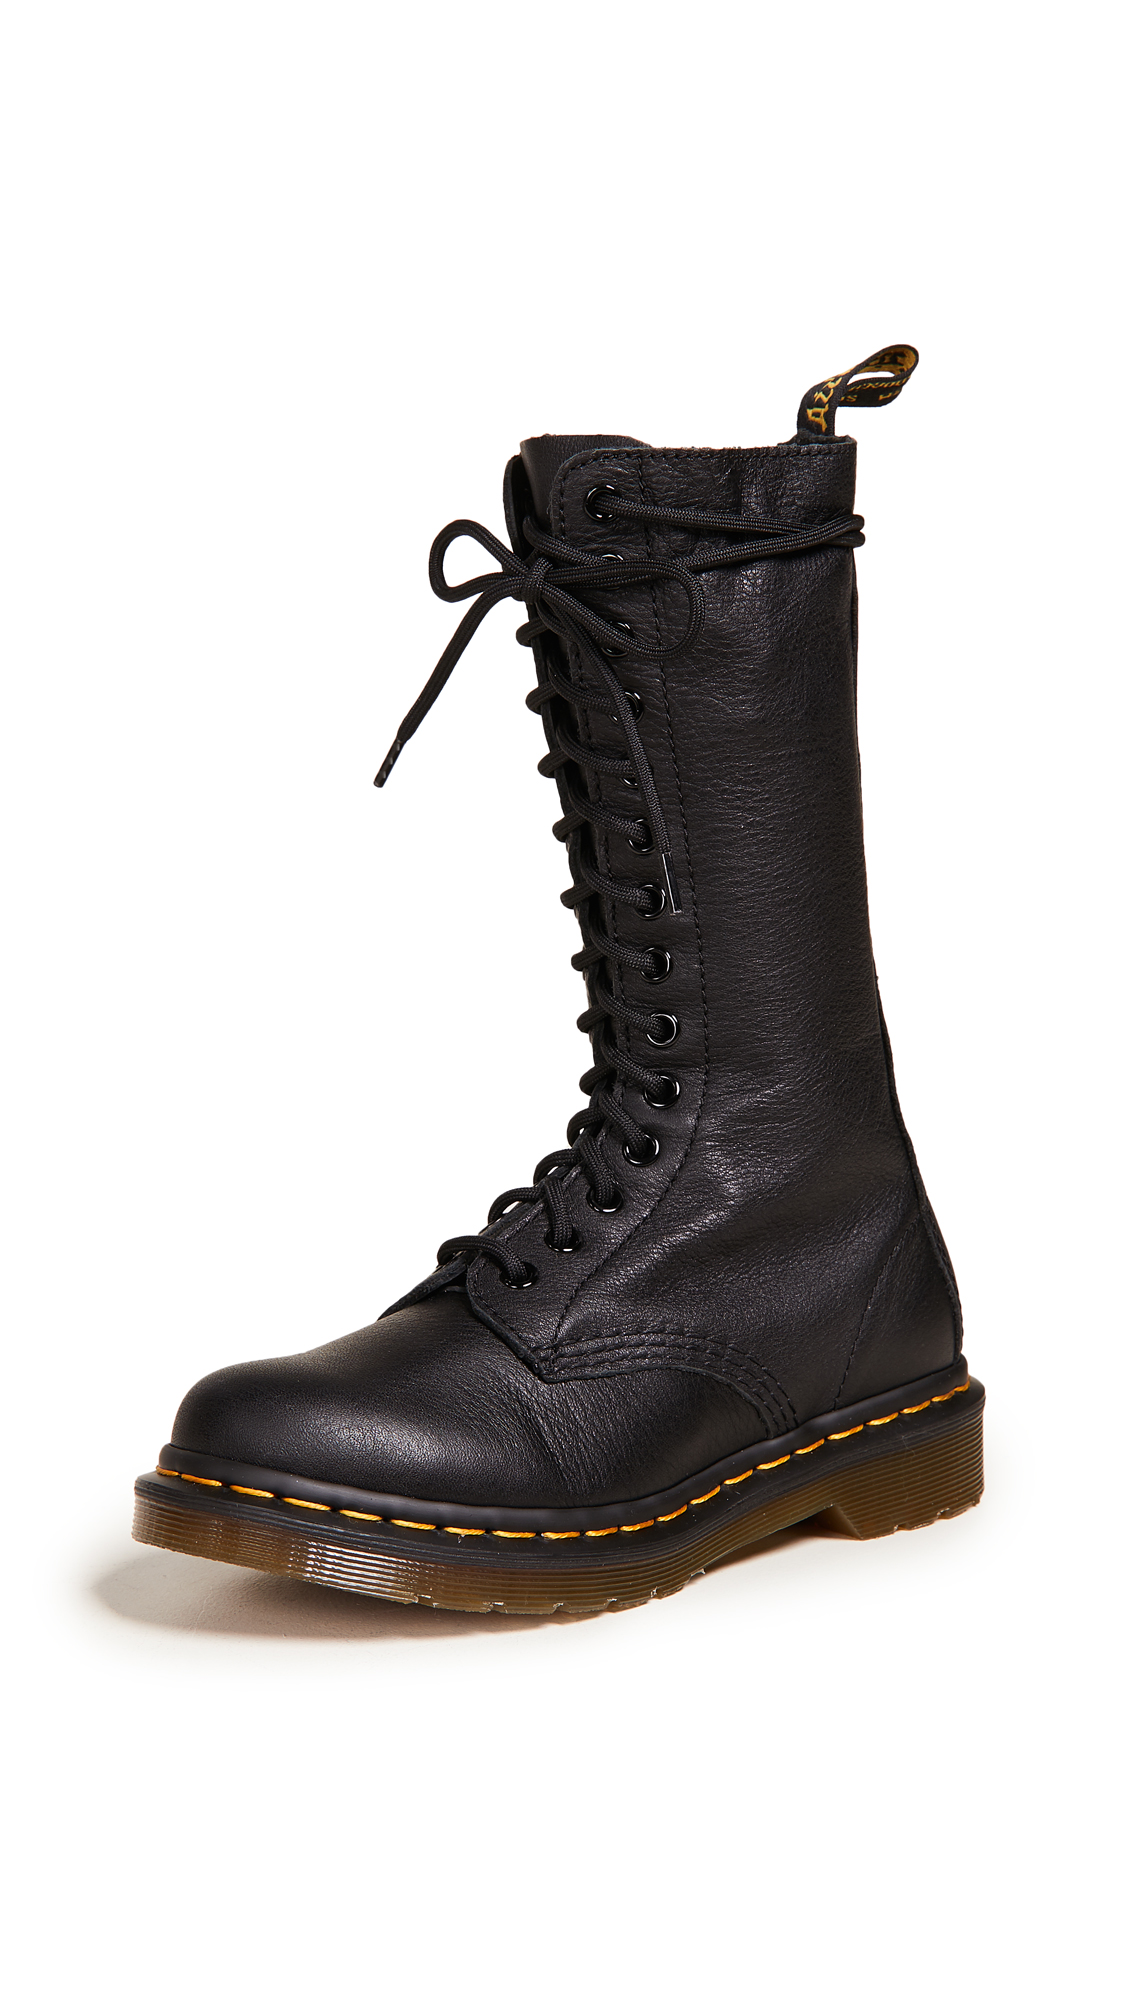 Dr. Martens 14 Eye Zip Boots - Black